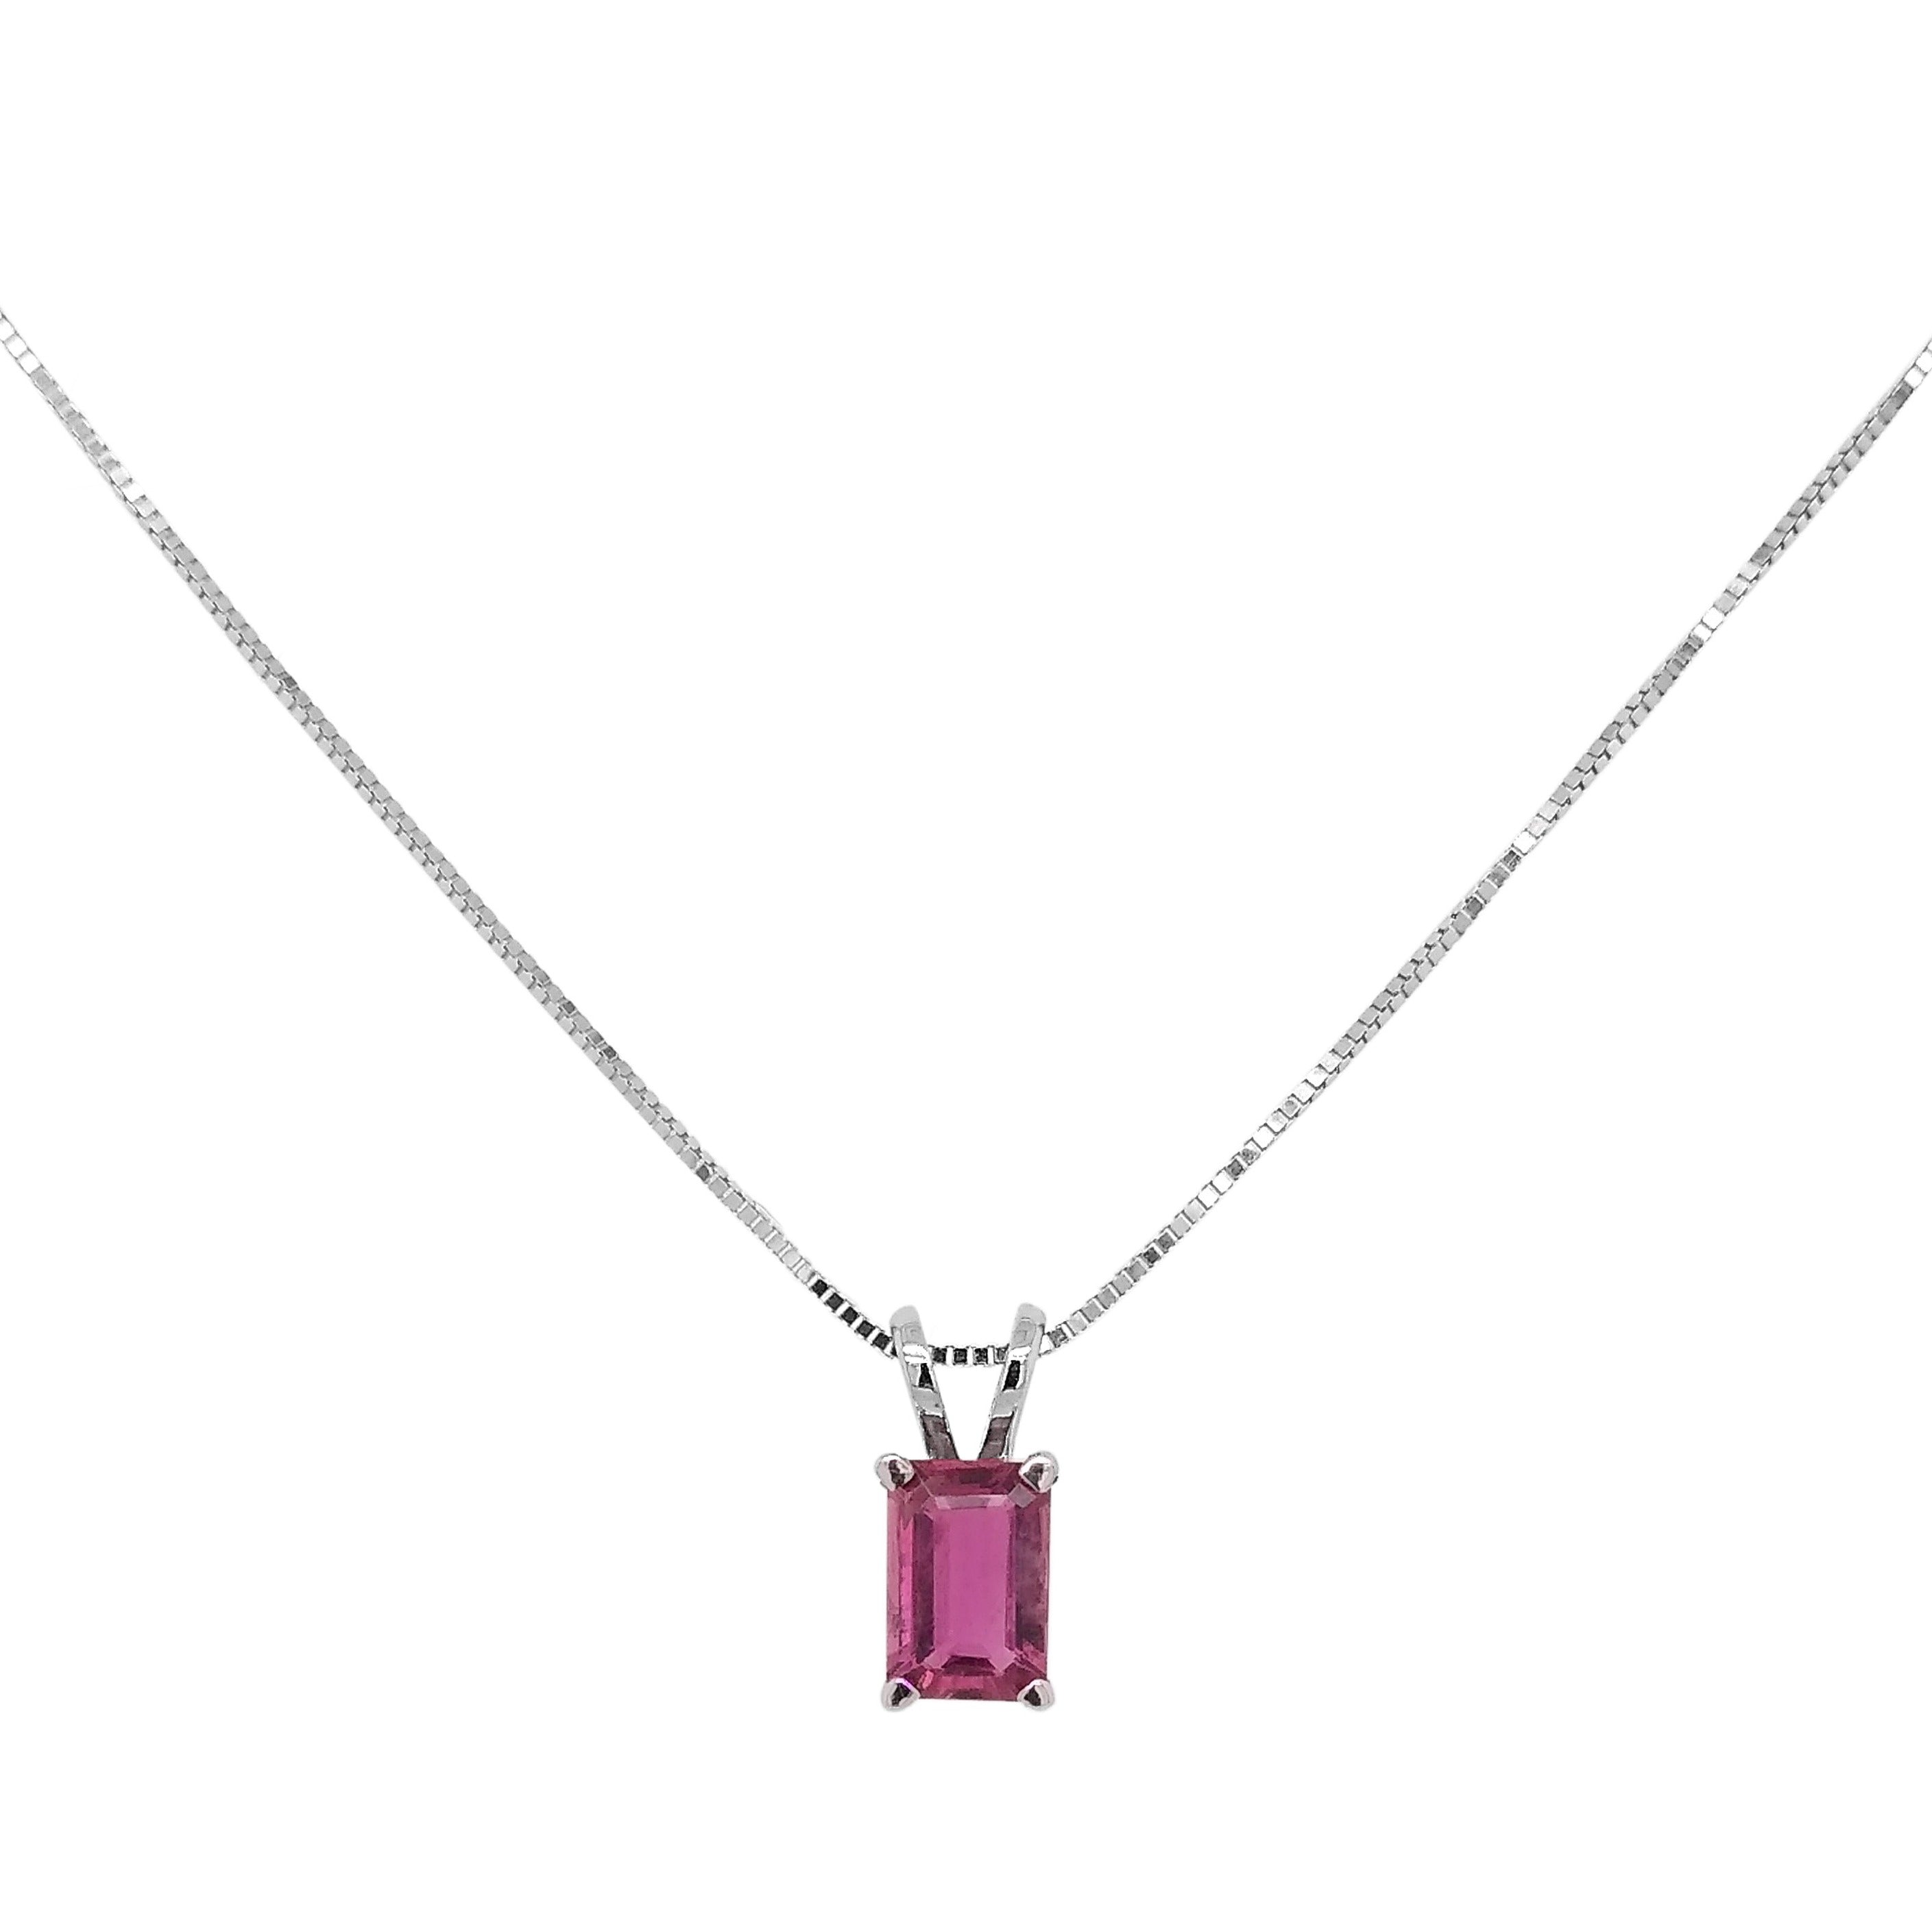 18ct White Gold Pink Tourmaline Pendant & Chain